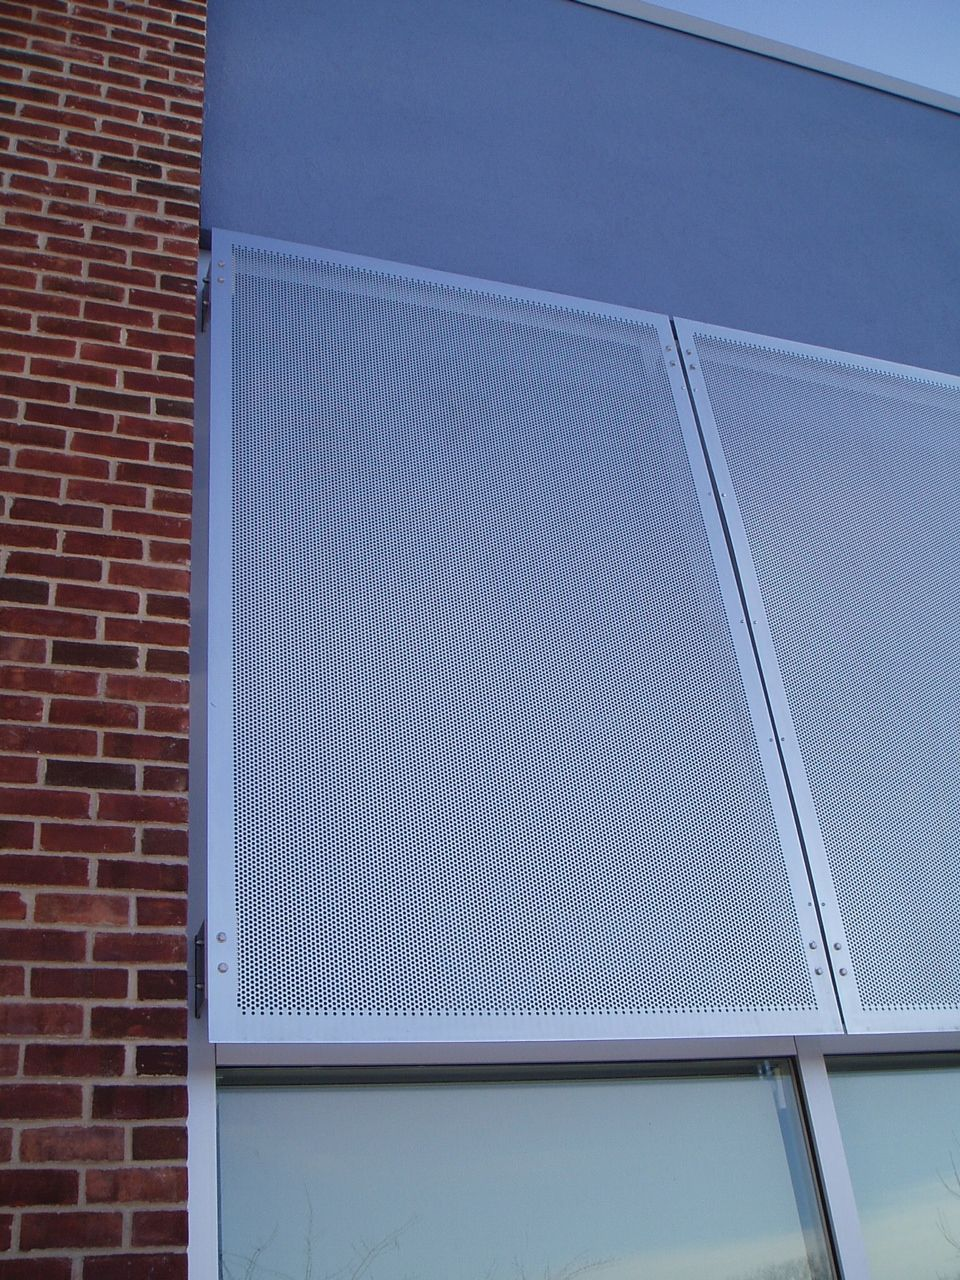 Functional And Sleek Mcnichols Perforatedmetal Panels Offer Shade As They Complement A Building S Brick Exterior